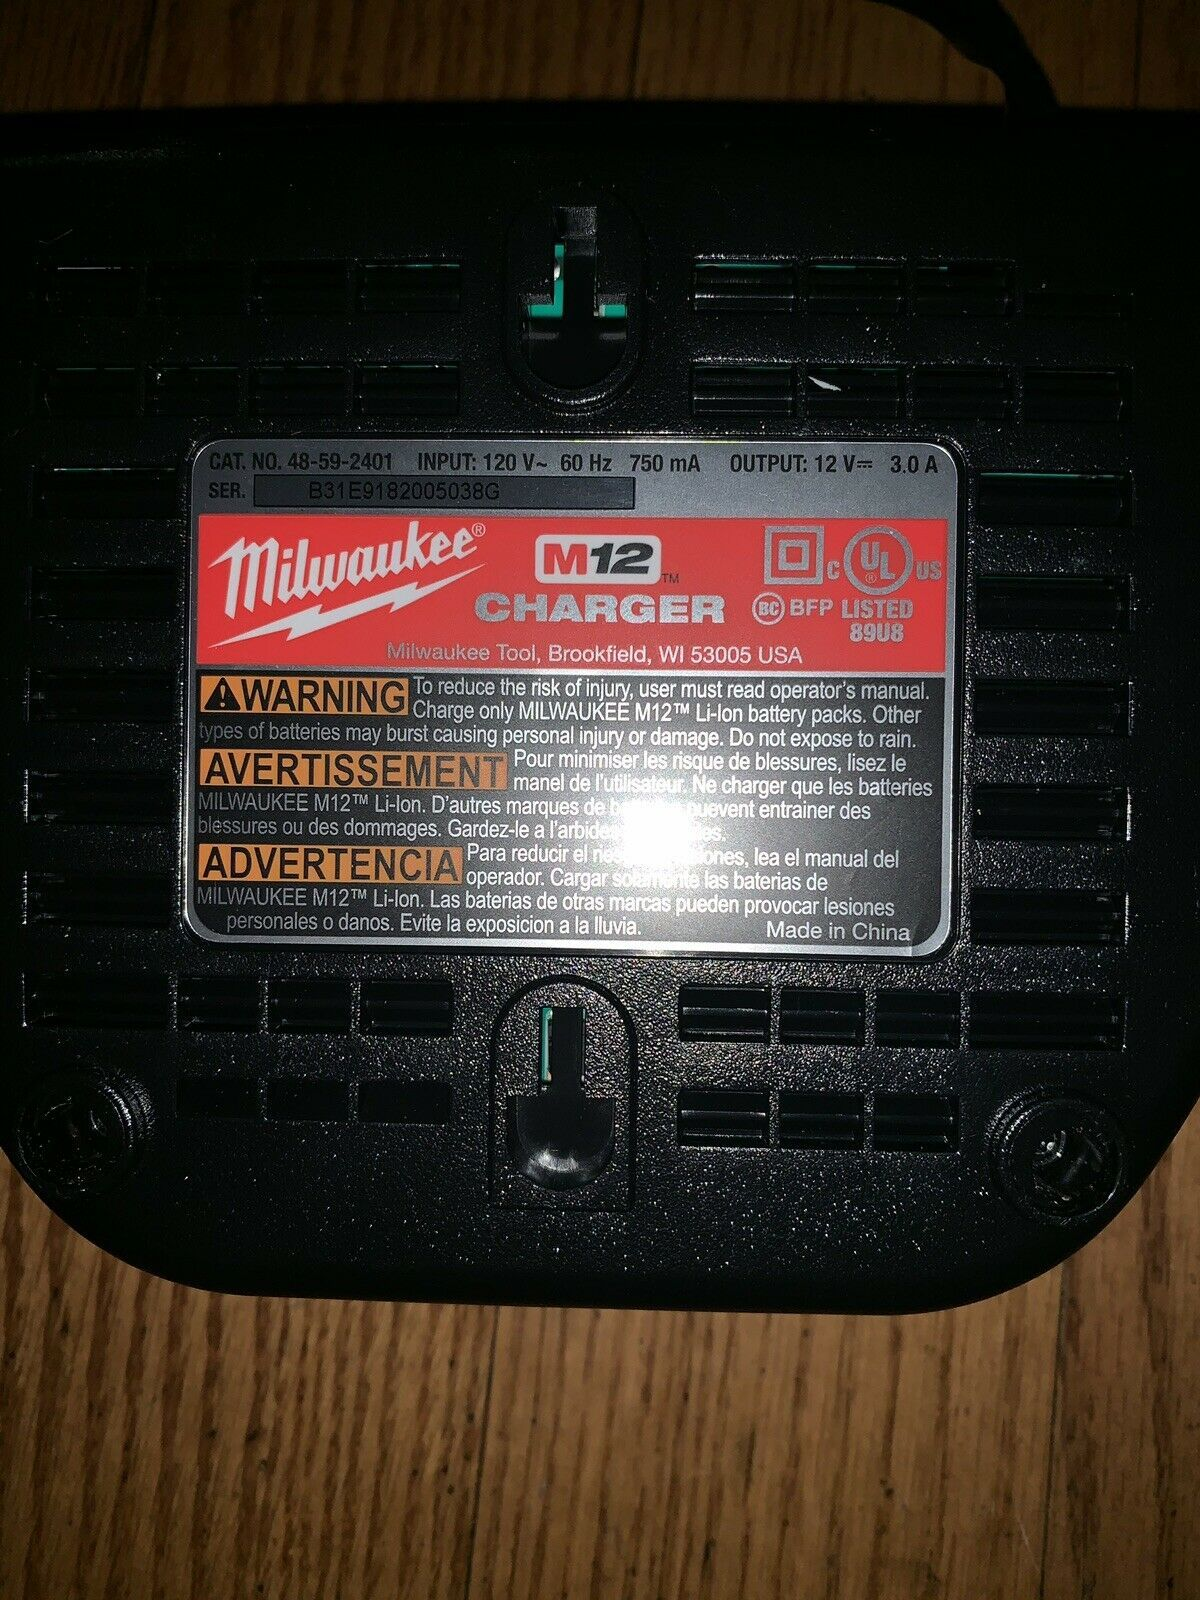 Primary image for Milwaukee 48-59-2401 12V M12 Li-ion Battery Charger - Red/Black